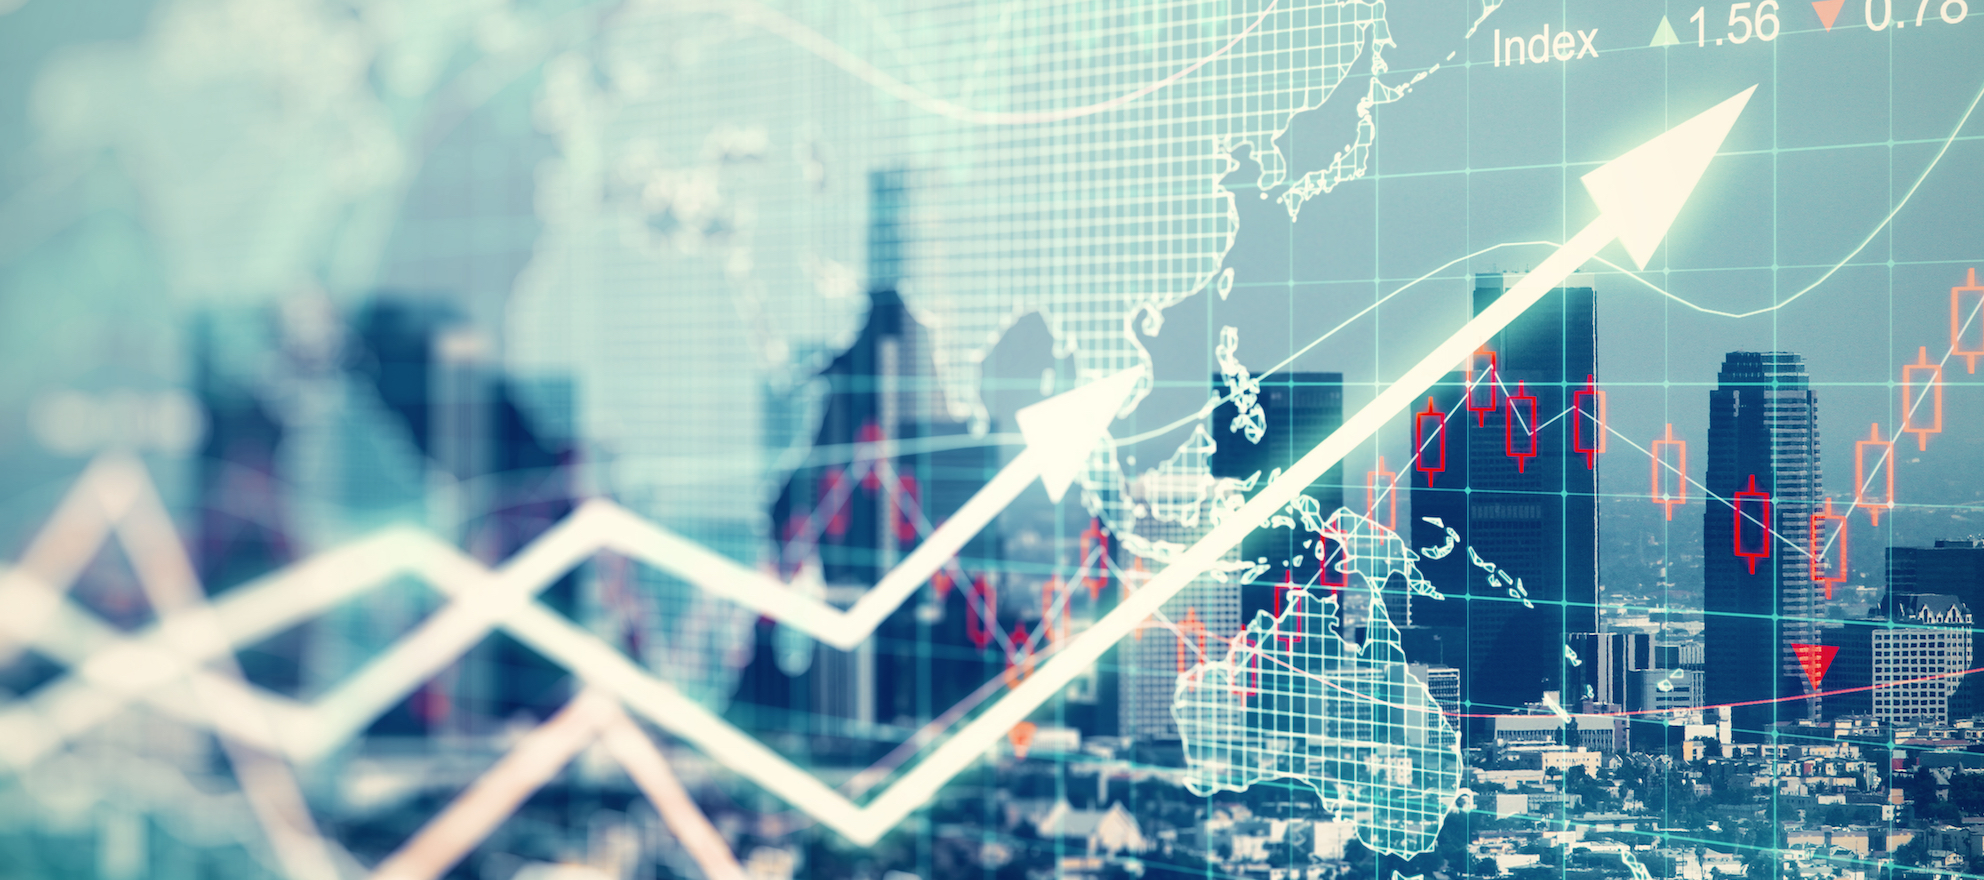 Economic Update: March 2012 Image